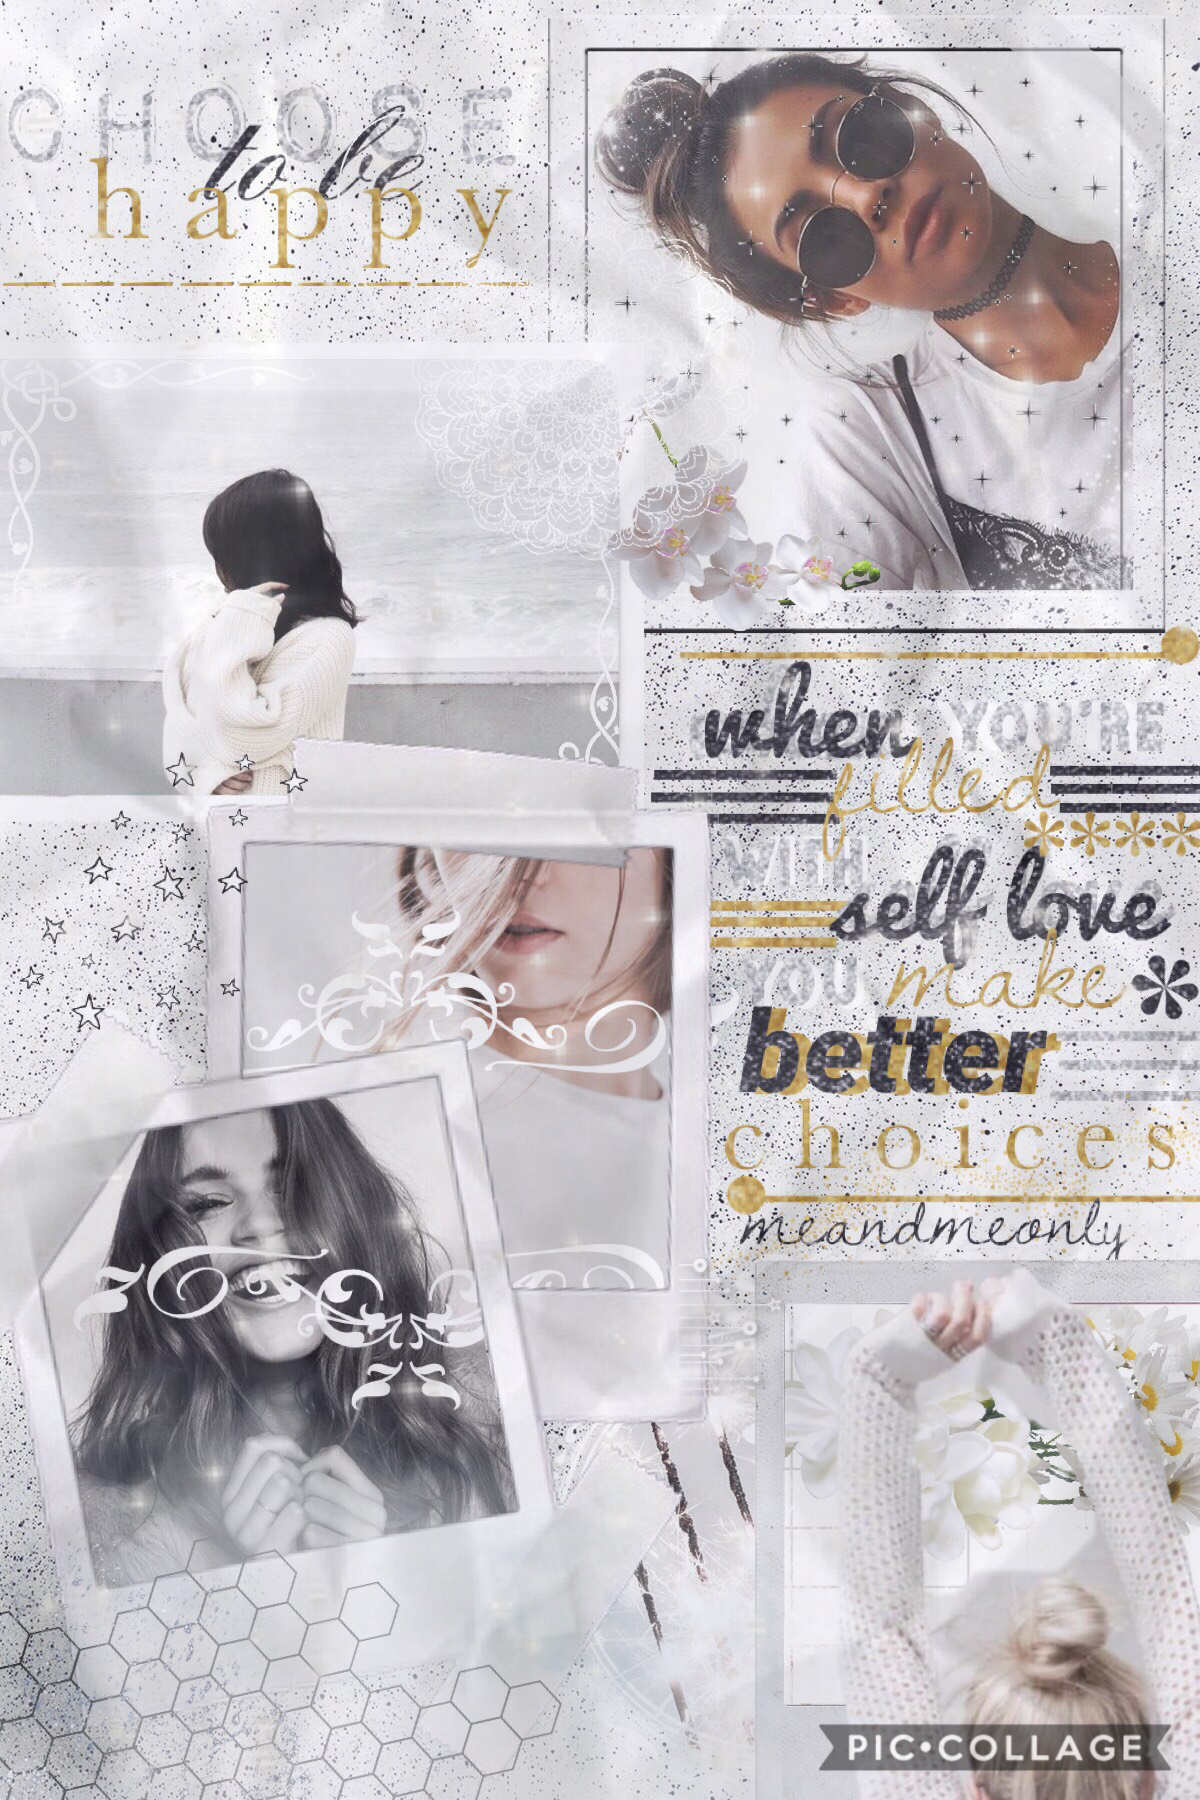 hola! so schools again tomorrow :( so I won't be as active. idk if it's just me, but I love looking at my older collages and seeing how much I have changed!💫 QOTD: time you go to bed on school day? AOTD: 9:00-9:30pm✨🌿